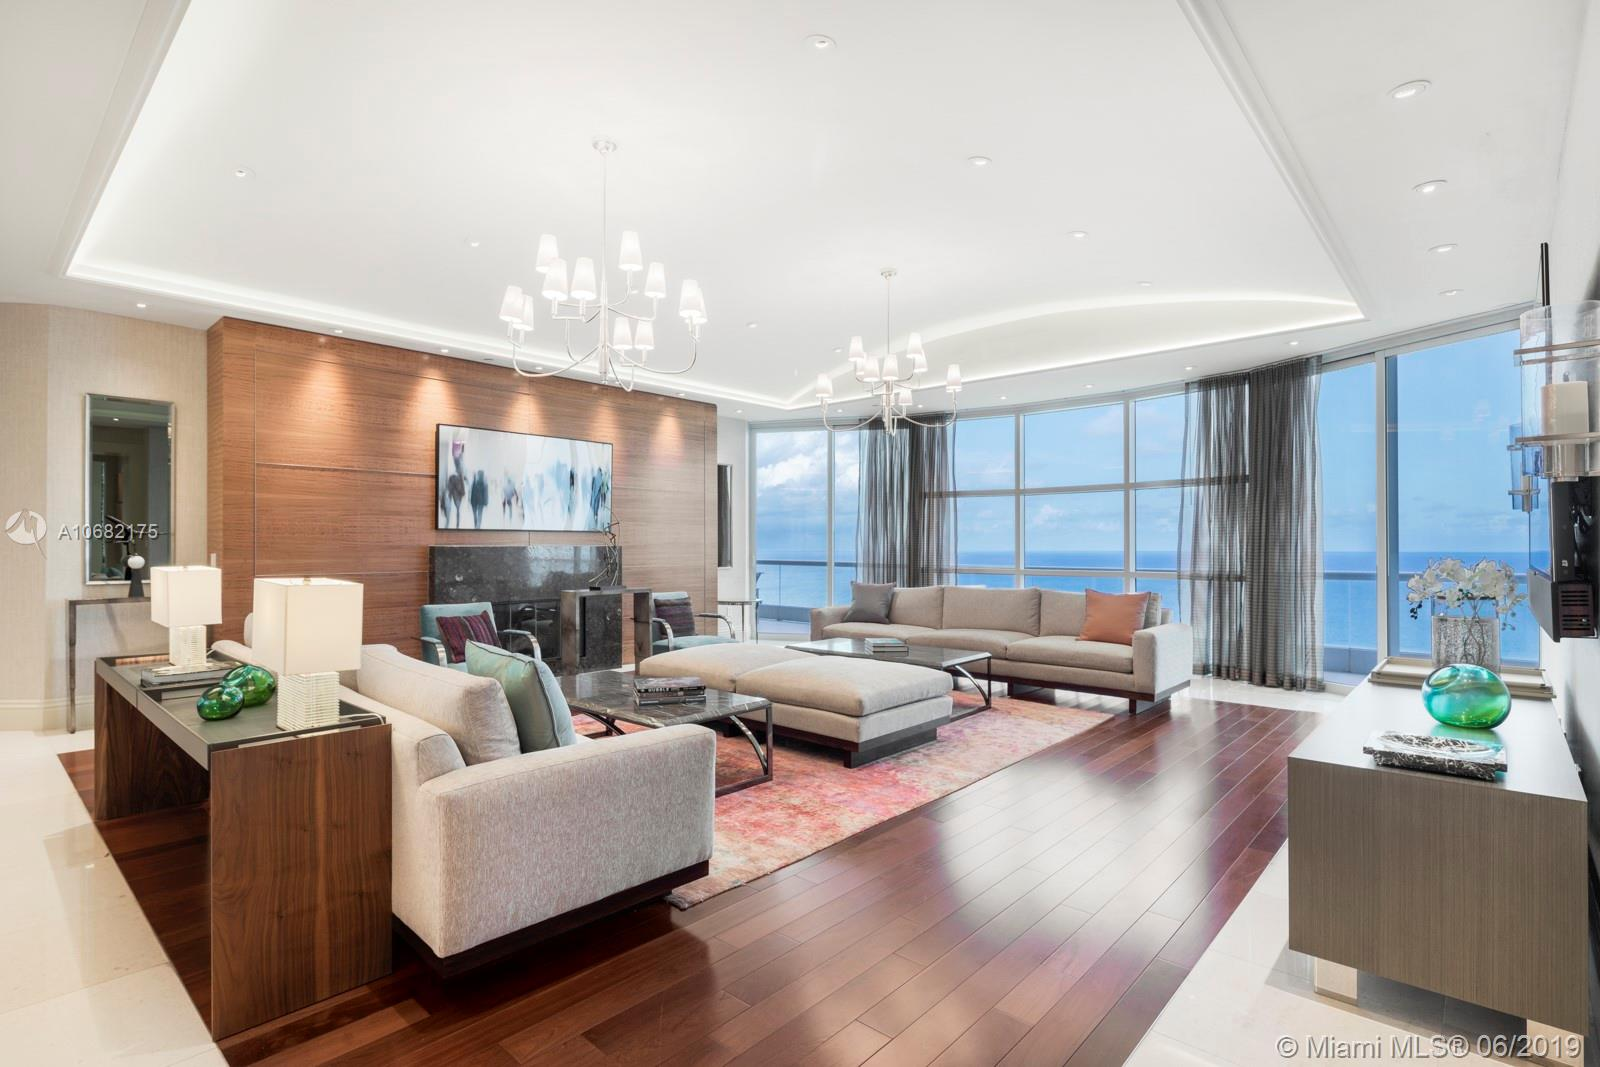 16051 Collins Ave, Sunny Isles Beach, Florida